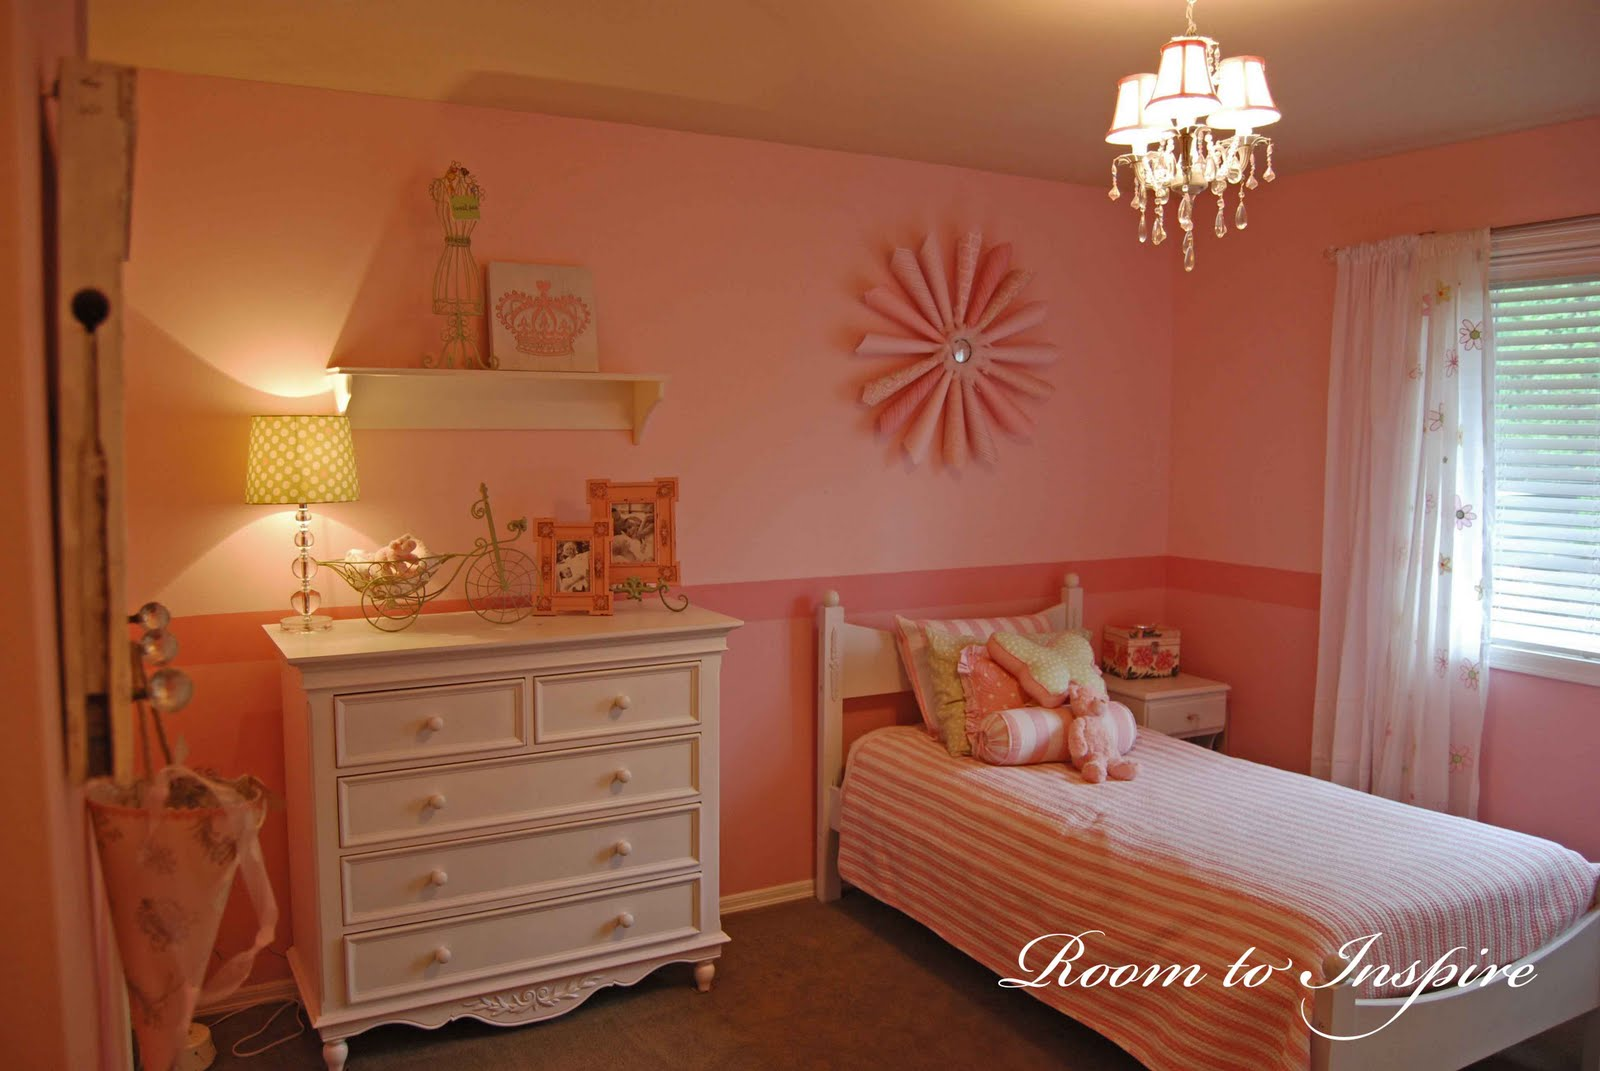 28 2 year old bedroom ideas bedroom ideas for 2 for 3 year old bedroom ideas